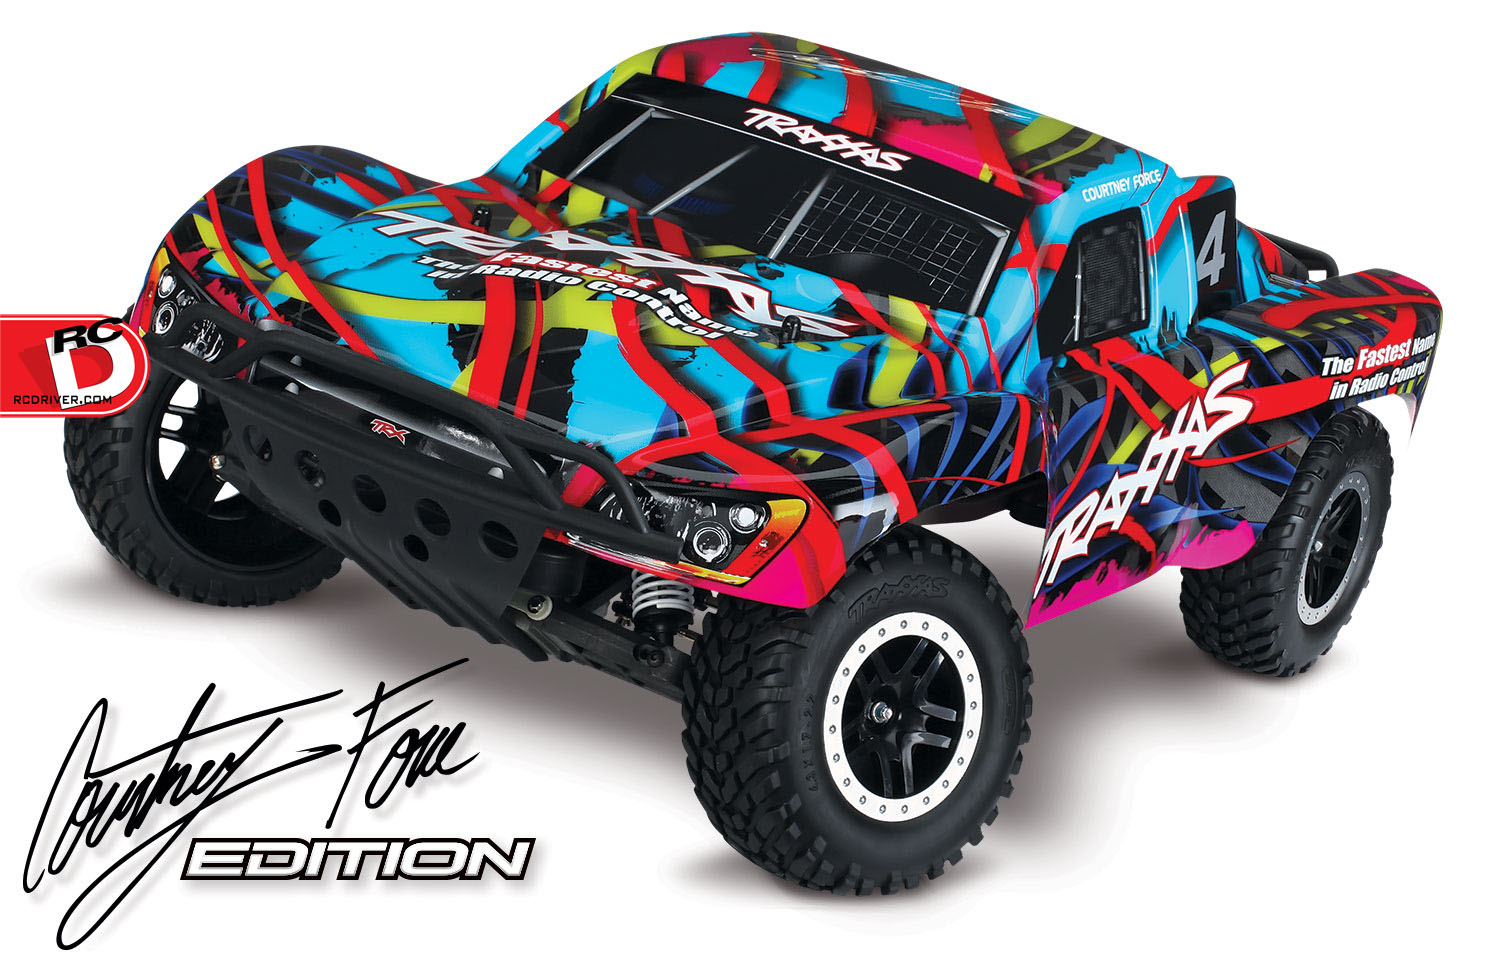 Traxxas Pink and Courtney Force Editions of the Slash Stampede Bandit and Rustler_1 copy pink and courtney force editions of the slash, stampede, bandit RC Wiring Diagrams at virtualis.co